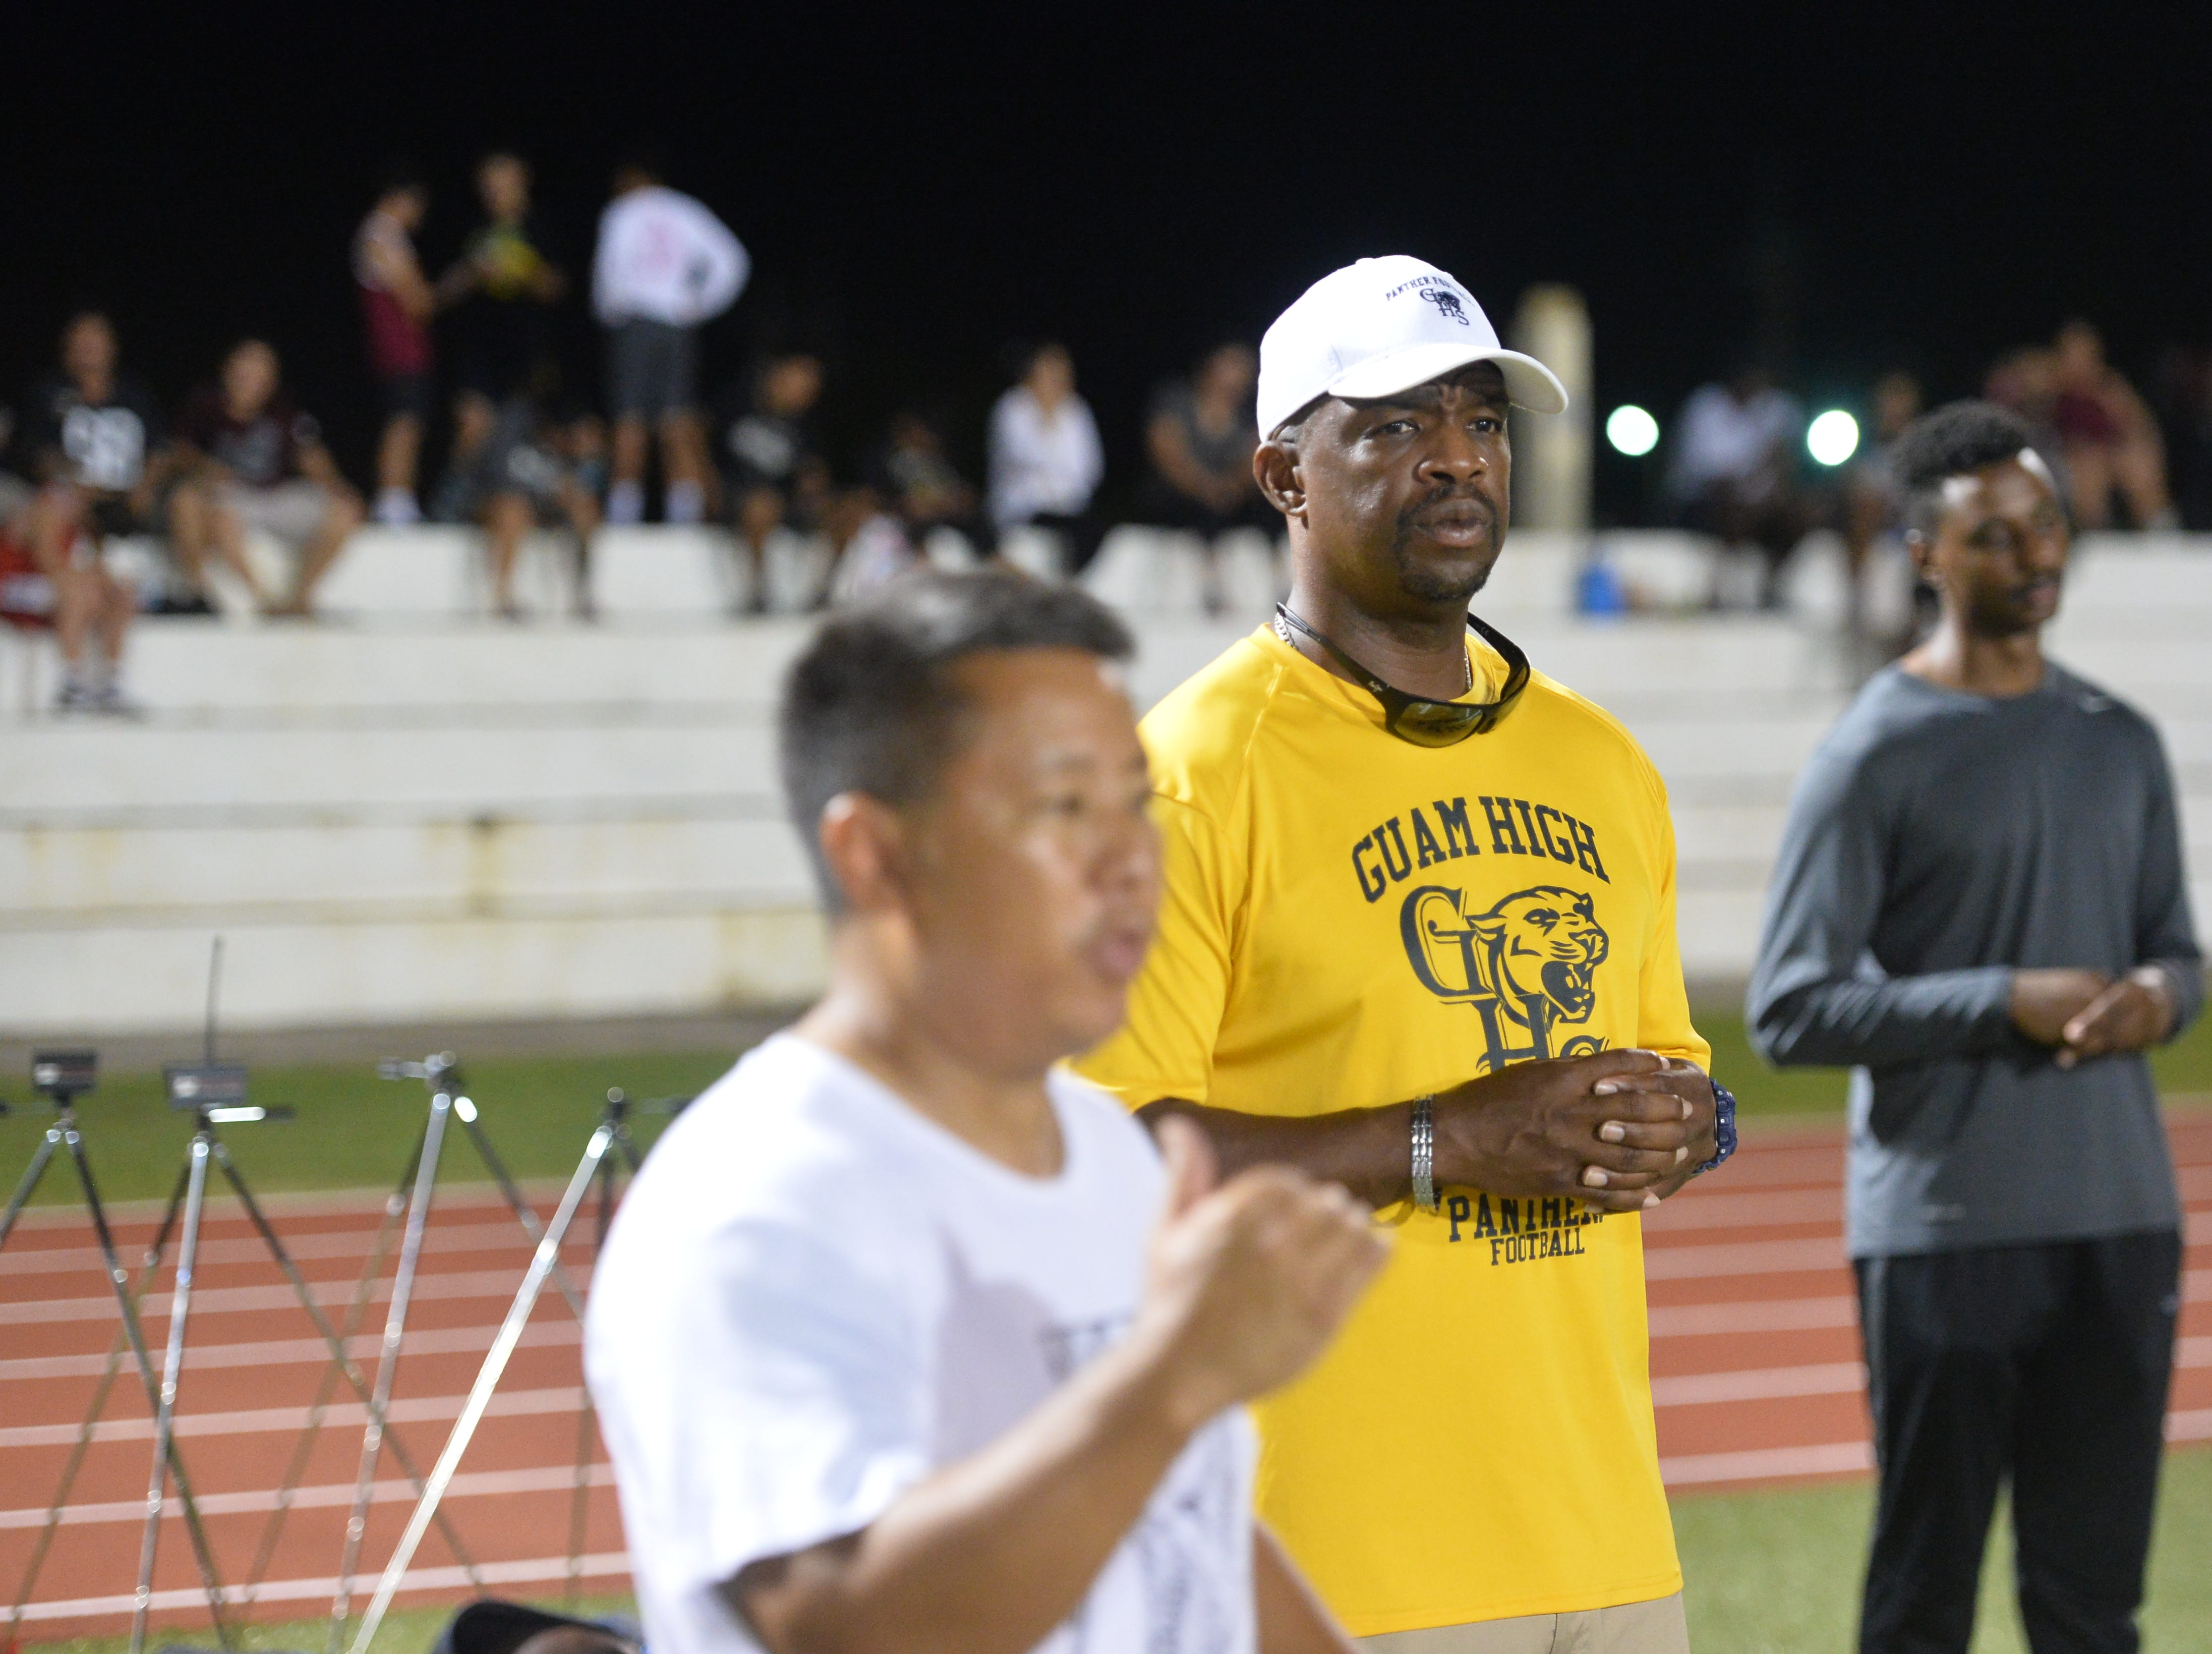 Guam High coach Jacob Dowdell, in yellow, watches the group gathered in front of coach Chad Ikei, at left.